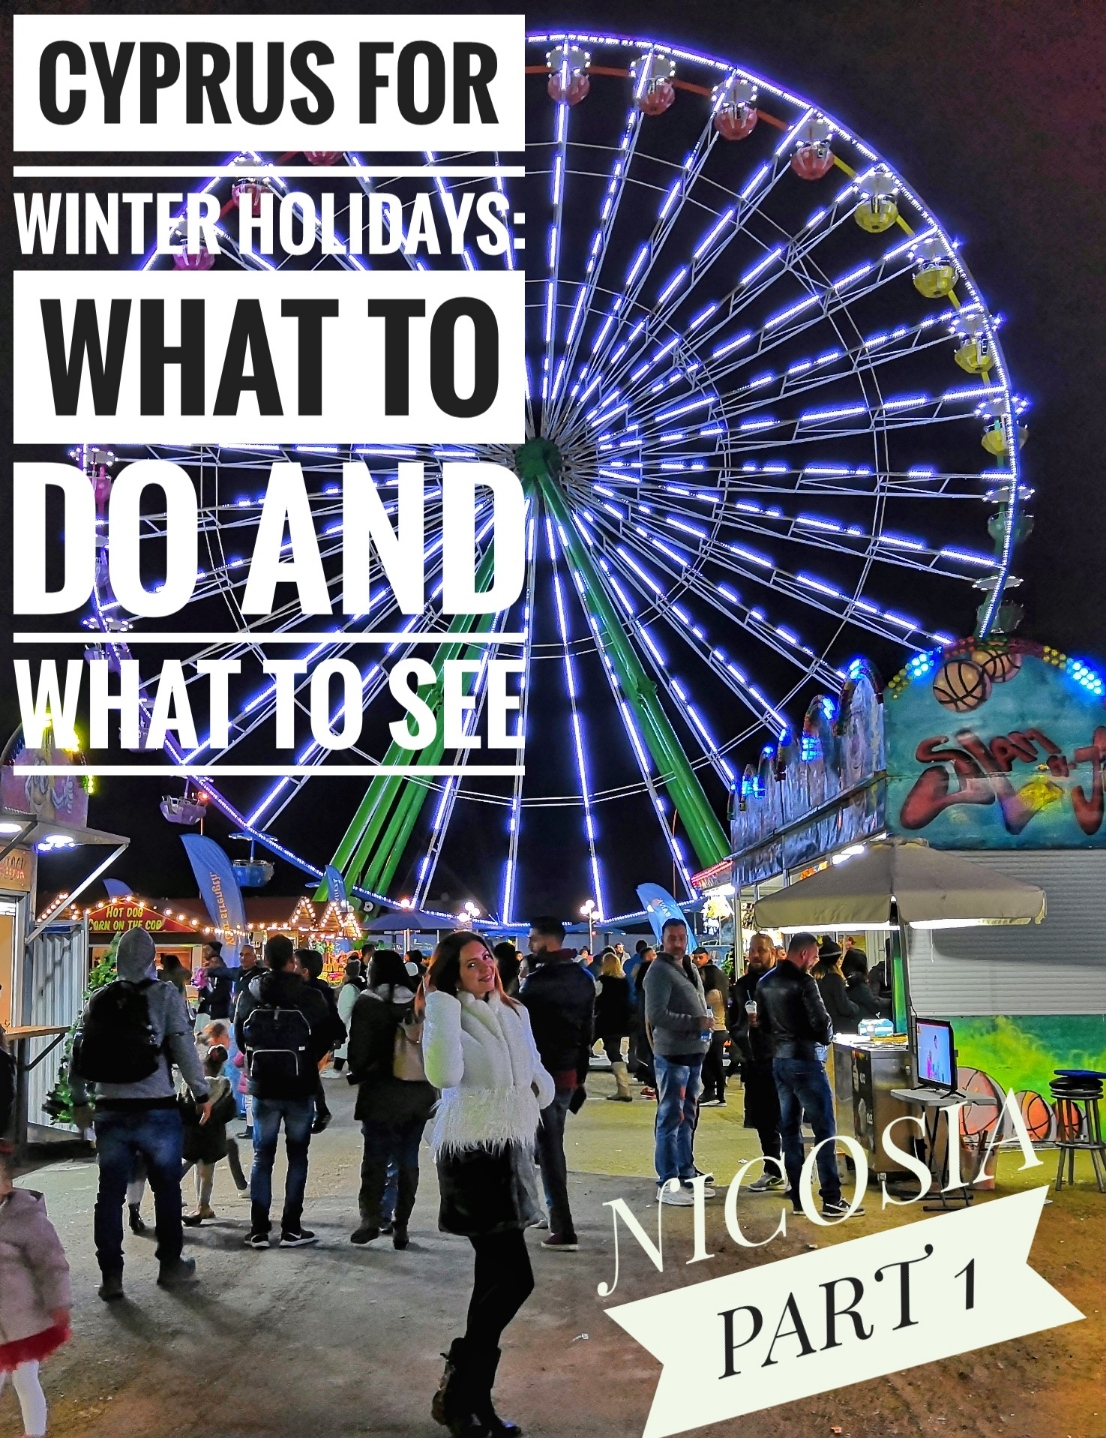 BodyEditor 20181226 214801498 01 02 resized 20190128 105652710 - WINTER HOLIDAYS IN CYPRUS: WHAT TO DO AND WHAT TO SEE